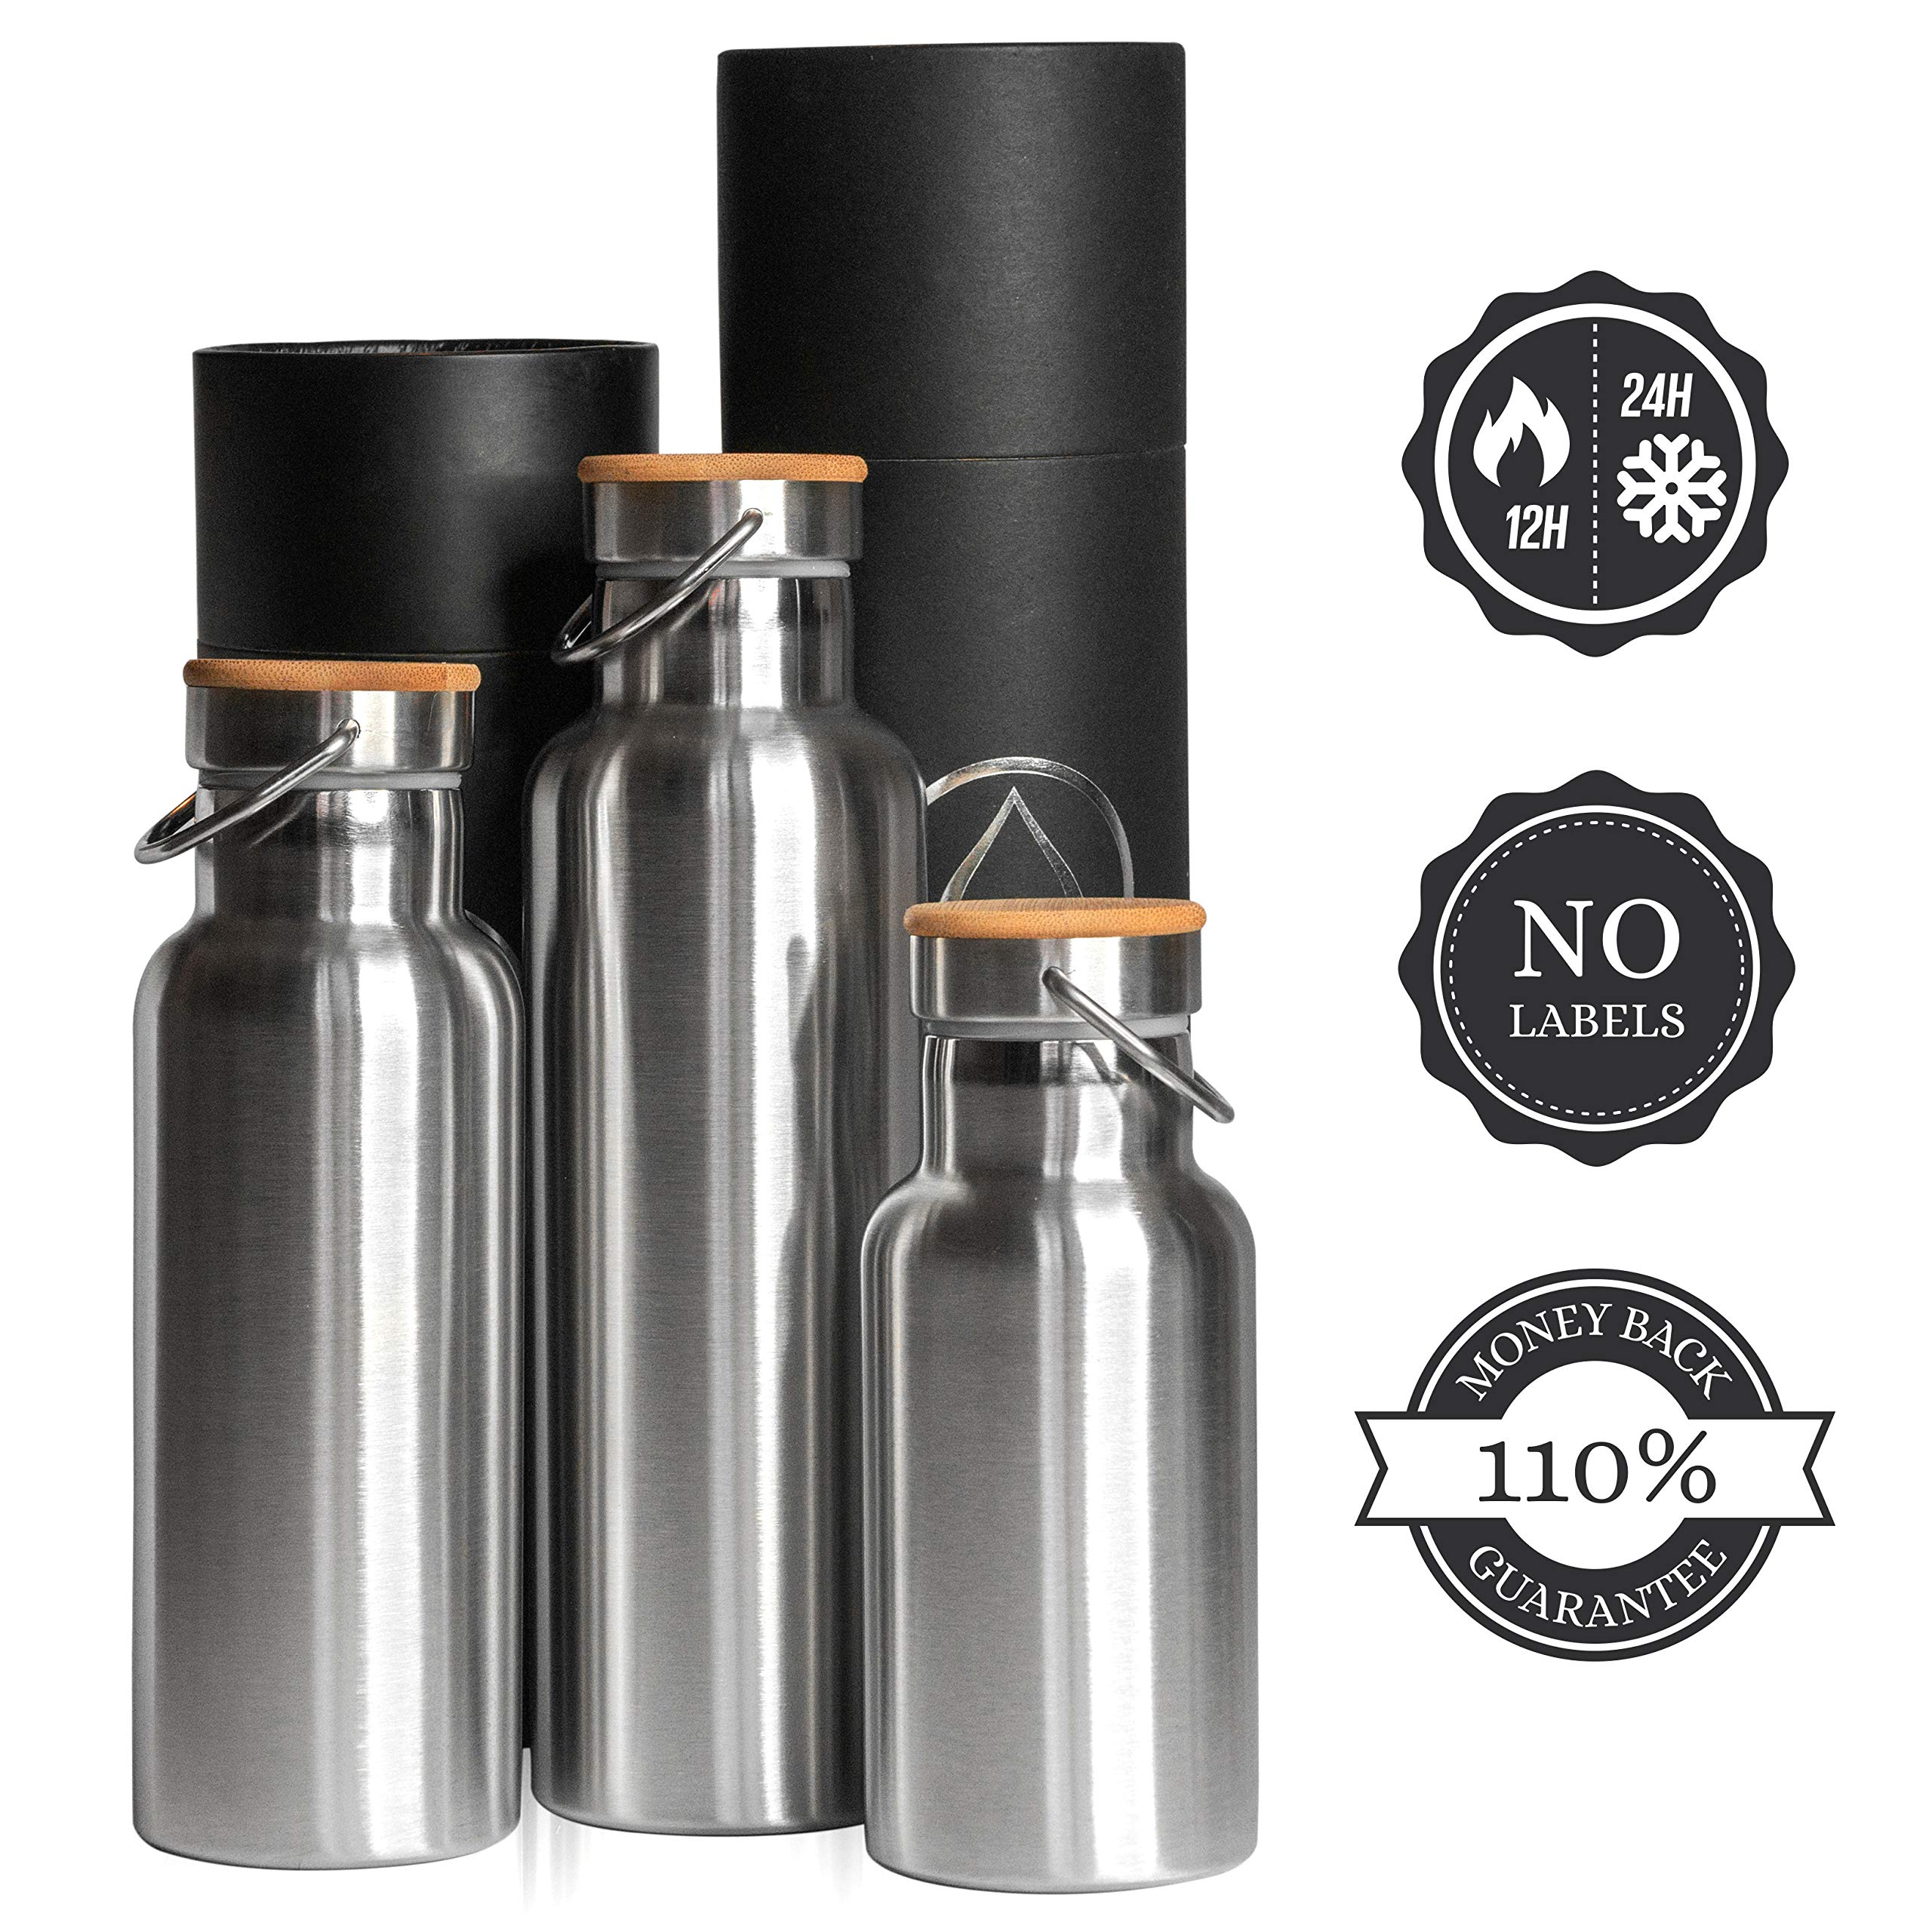 Insulated Water Bottle 34oz Vacuum / 1 Liter Thermo Insullated Stainless Steel Bottle Best for Hot & Cold drinks Ideal for women and men, BPA Free Metal, No Plastic, with Eco Bamboo cap & Wide Mouth